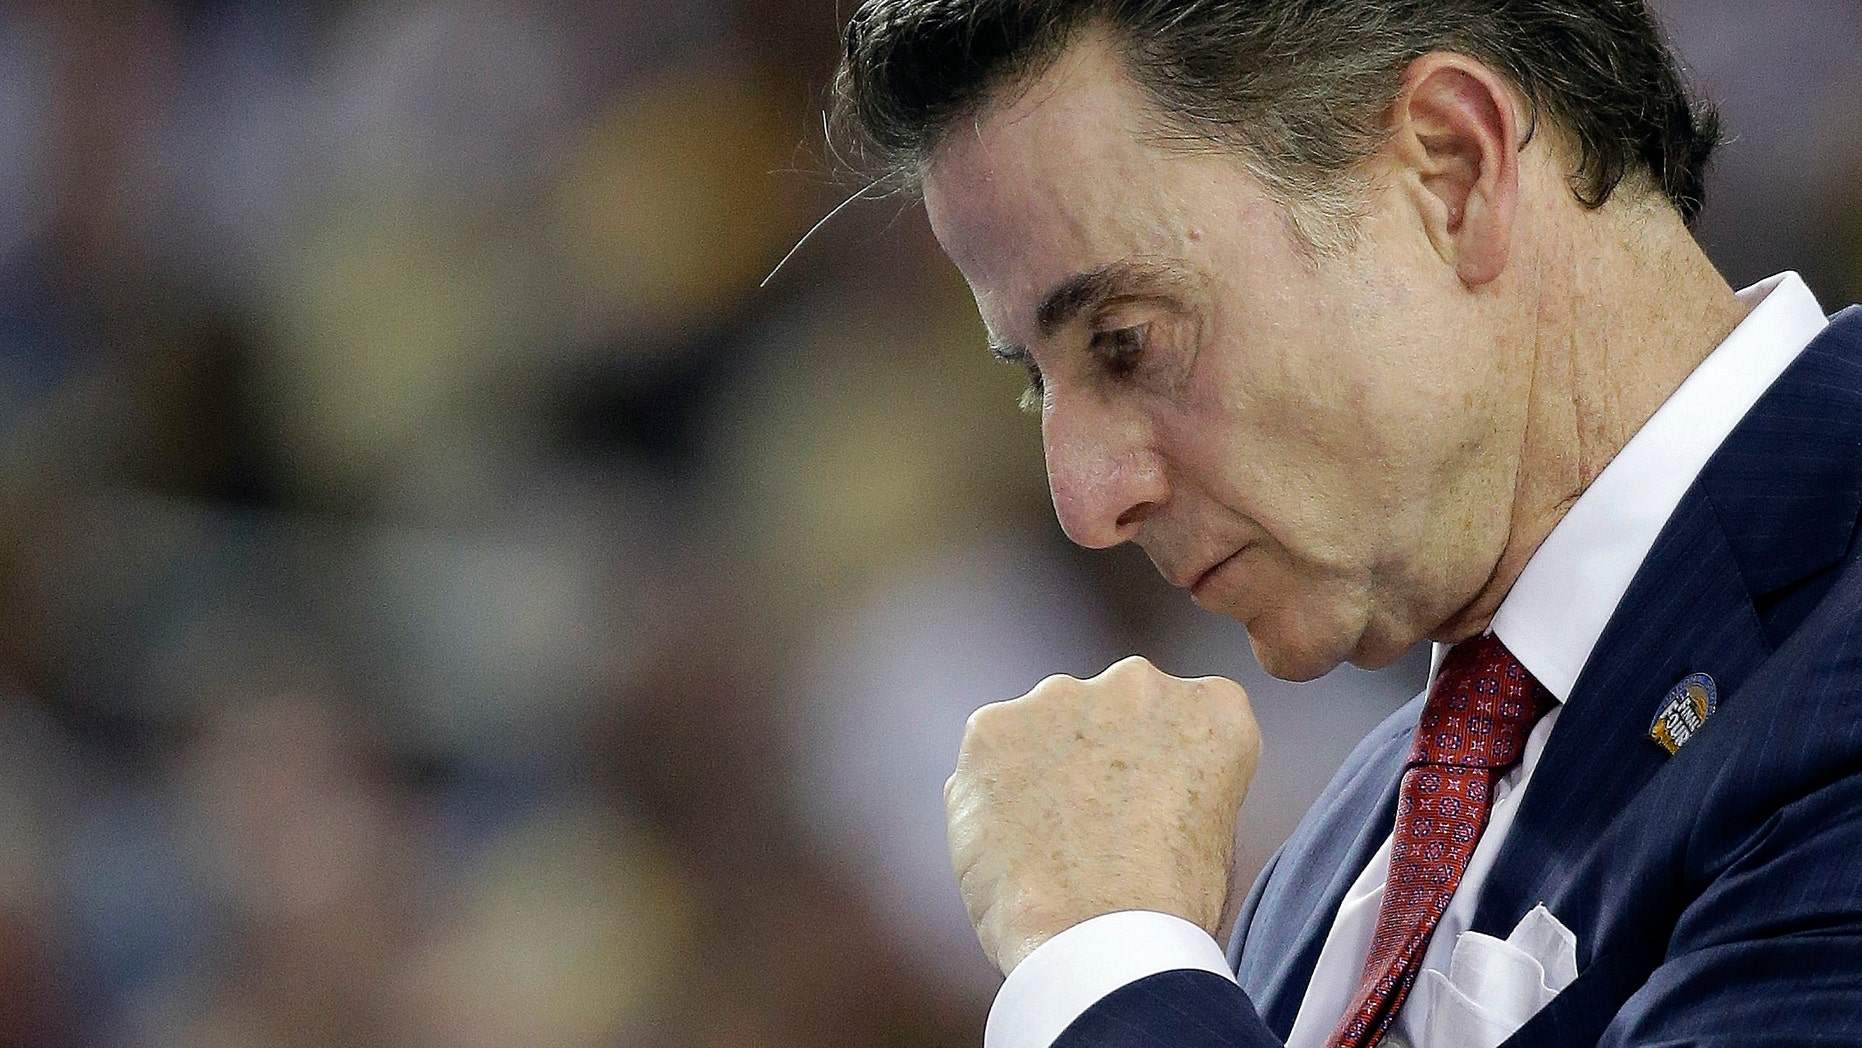 Louisville head coach Rick Pitino walks the court during the first half of a national semifinal at the Final Four of the NCAA college basketball game against Wichita State, Saturday, April 6, 2013, in Atlanta. (AP Photo/David J. Phillip)